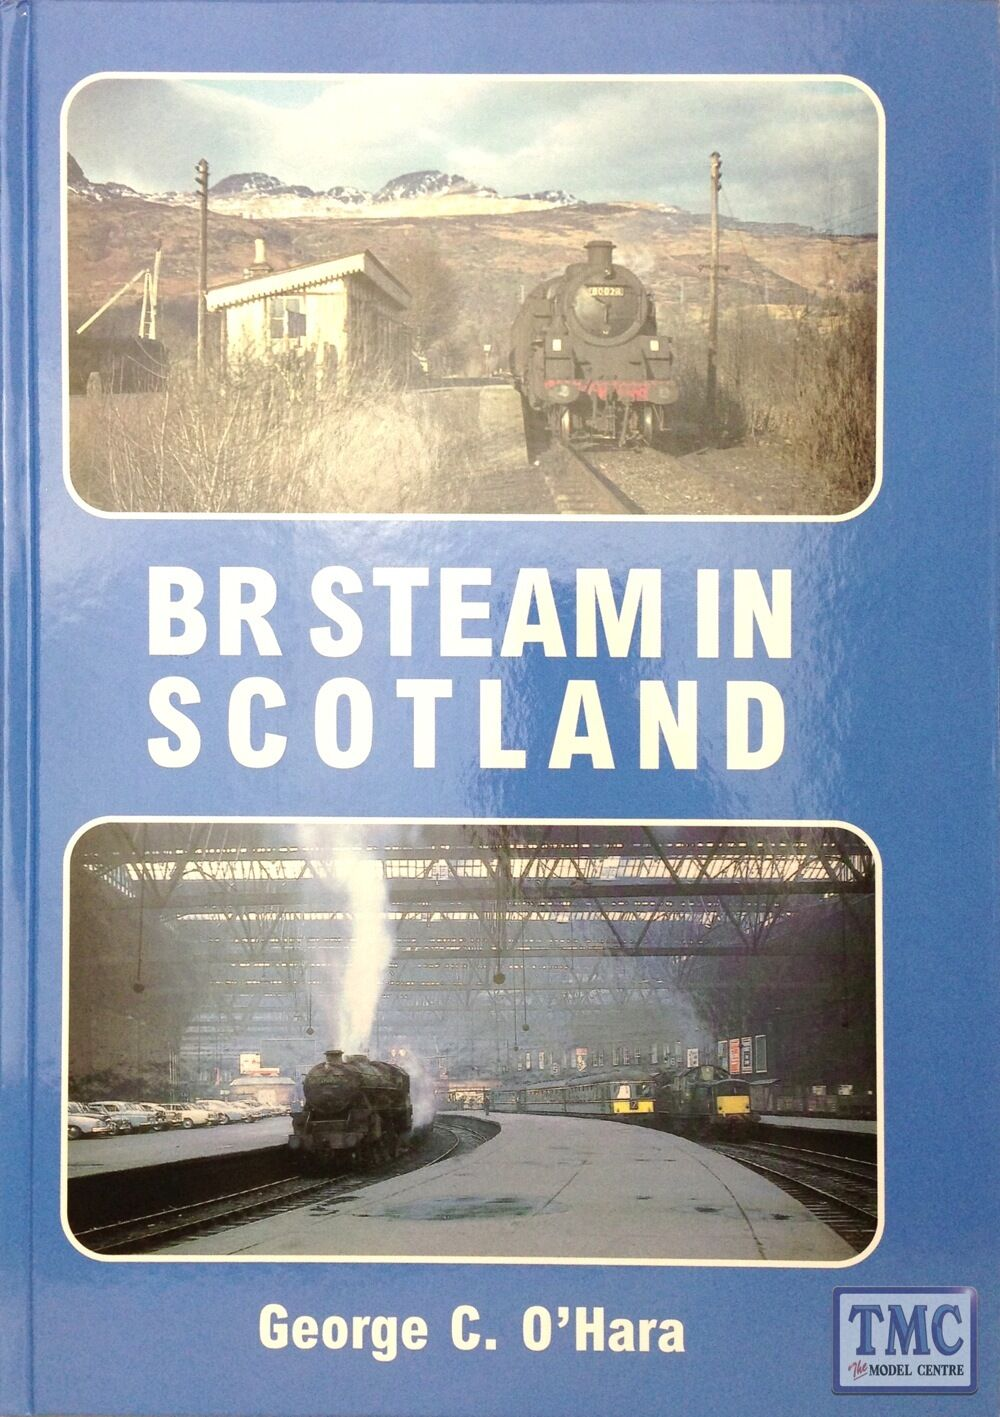 Scottish Railway Book : BR Steam In Scotland By G. O'Hara ISBN 978-0-9530821-3-1